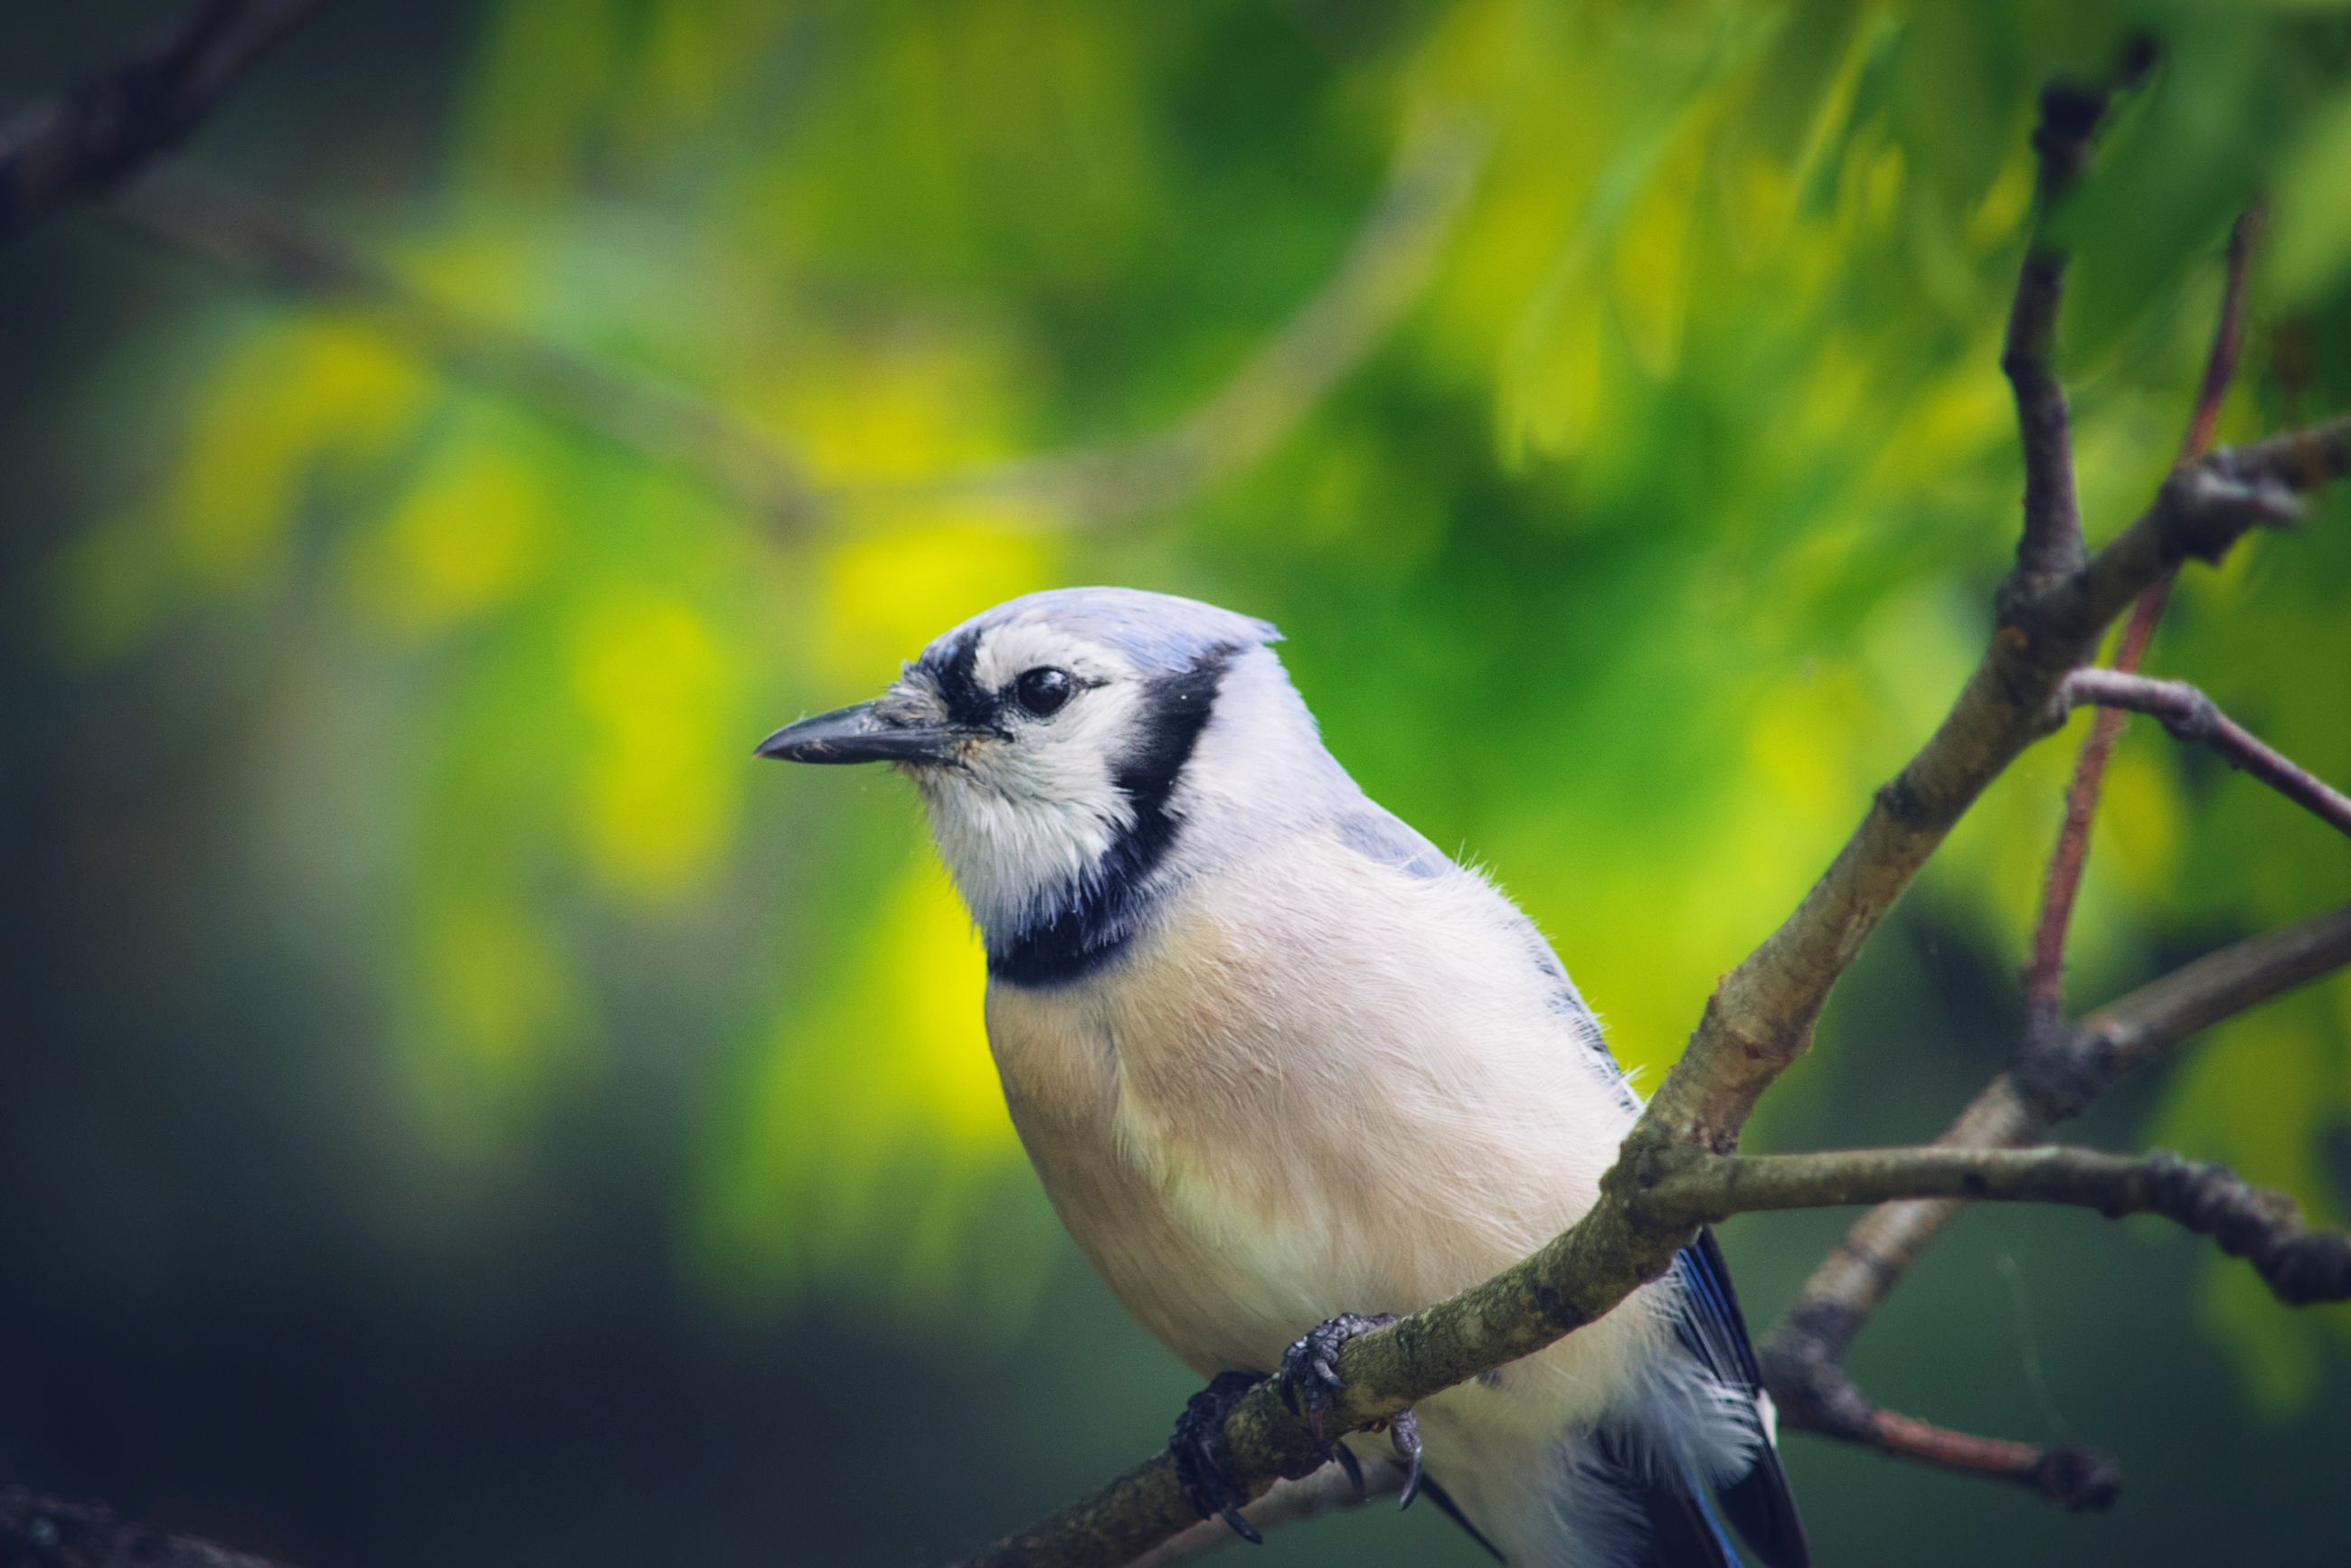 one animal, bird, animal themes, animals in the wild, focus on foreground, animal wildlife, day, perching, nature, outdoors, no people, close-up, great tit, branch, tree, beauty in nature